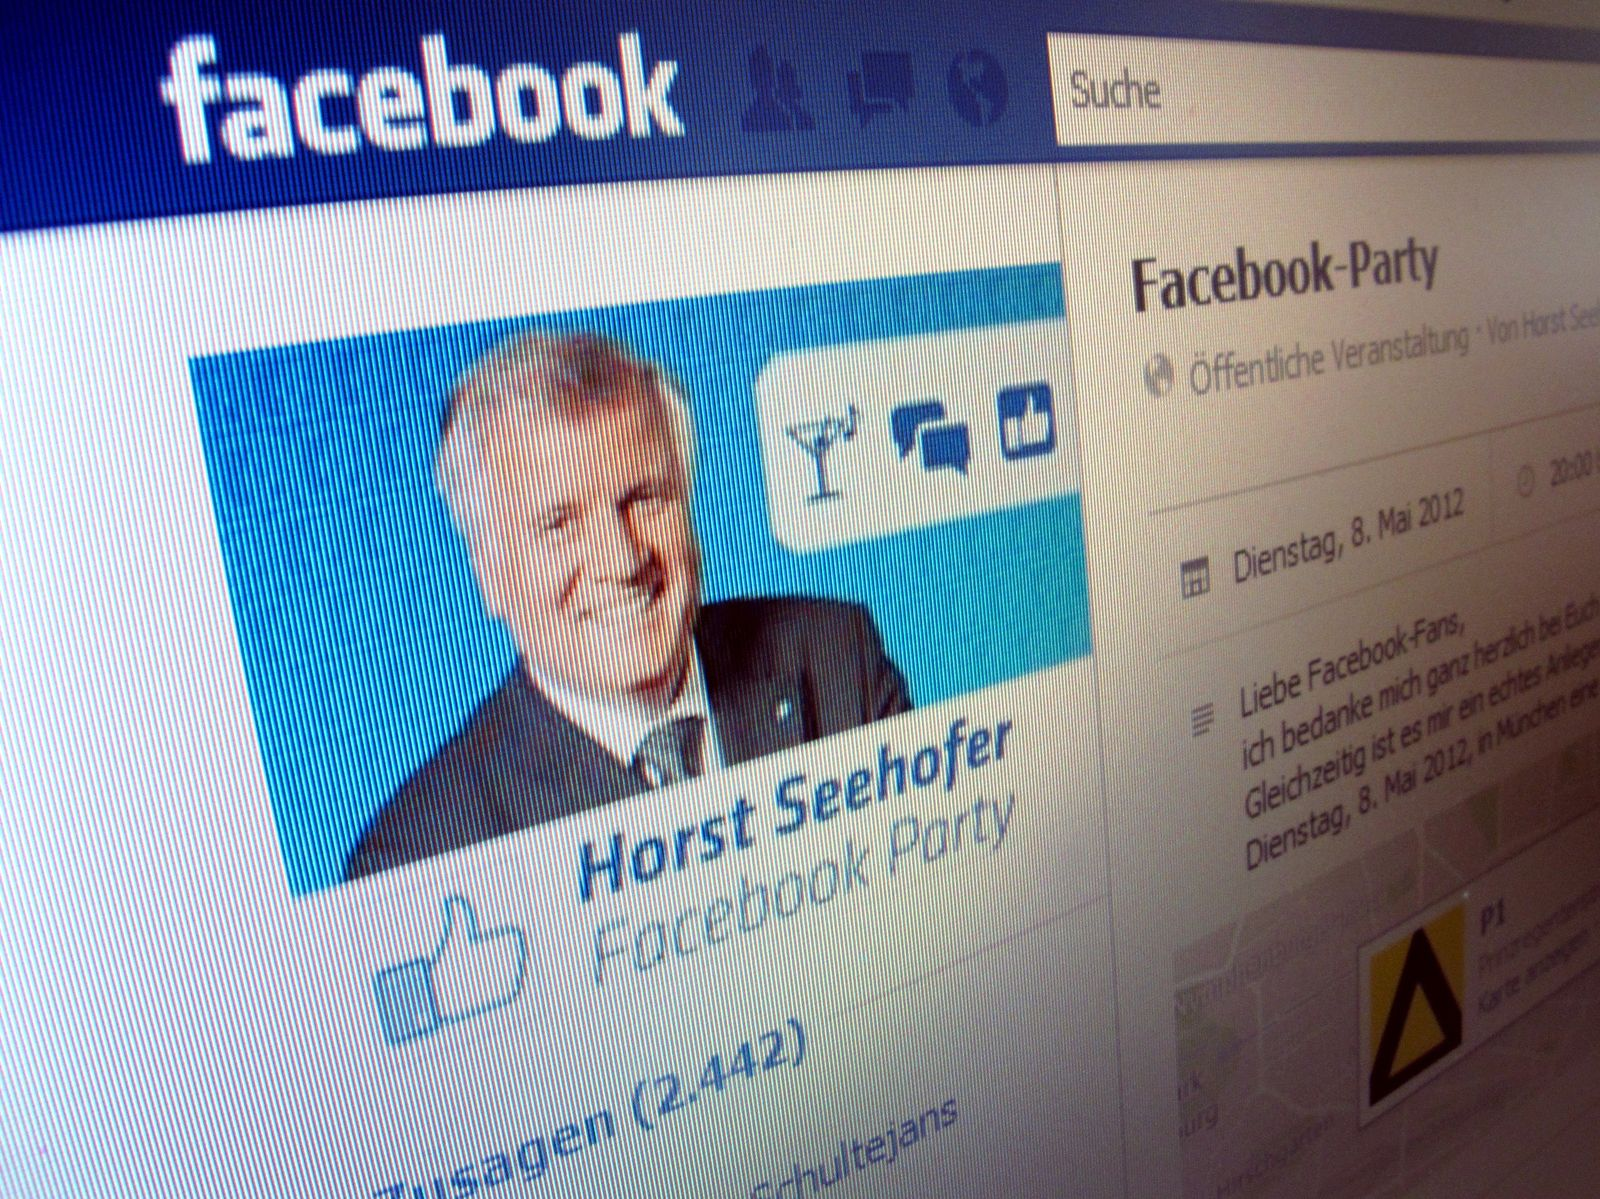 Seehofer lädt zu Facebook-Party